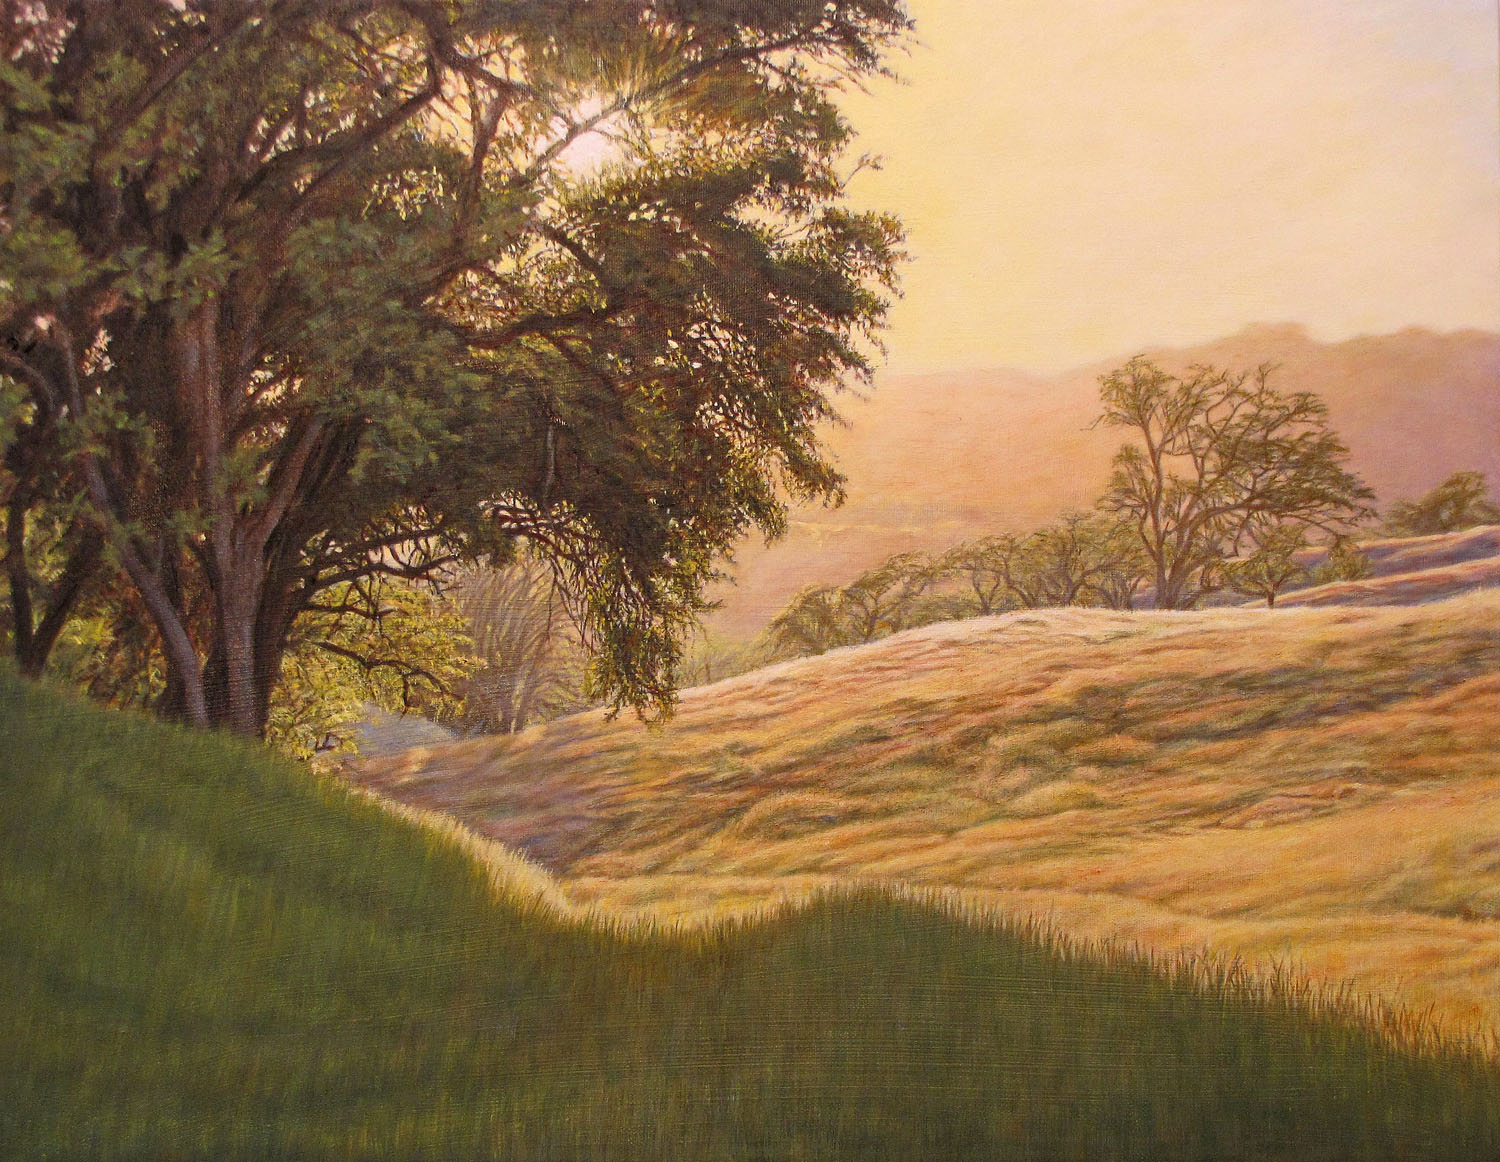 """""""Misty Vale""""   by Dennis Curry    Afternoon mists create a magical feeling, transforming an ordinary scene into something exceptional."""